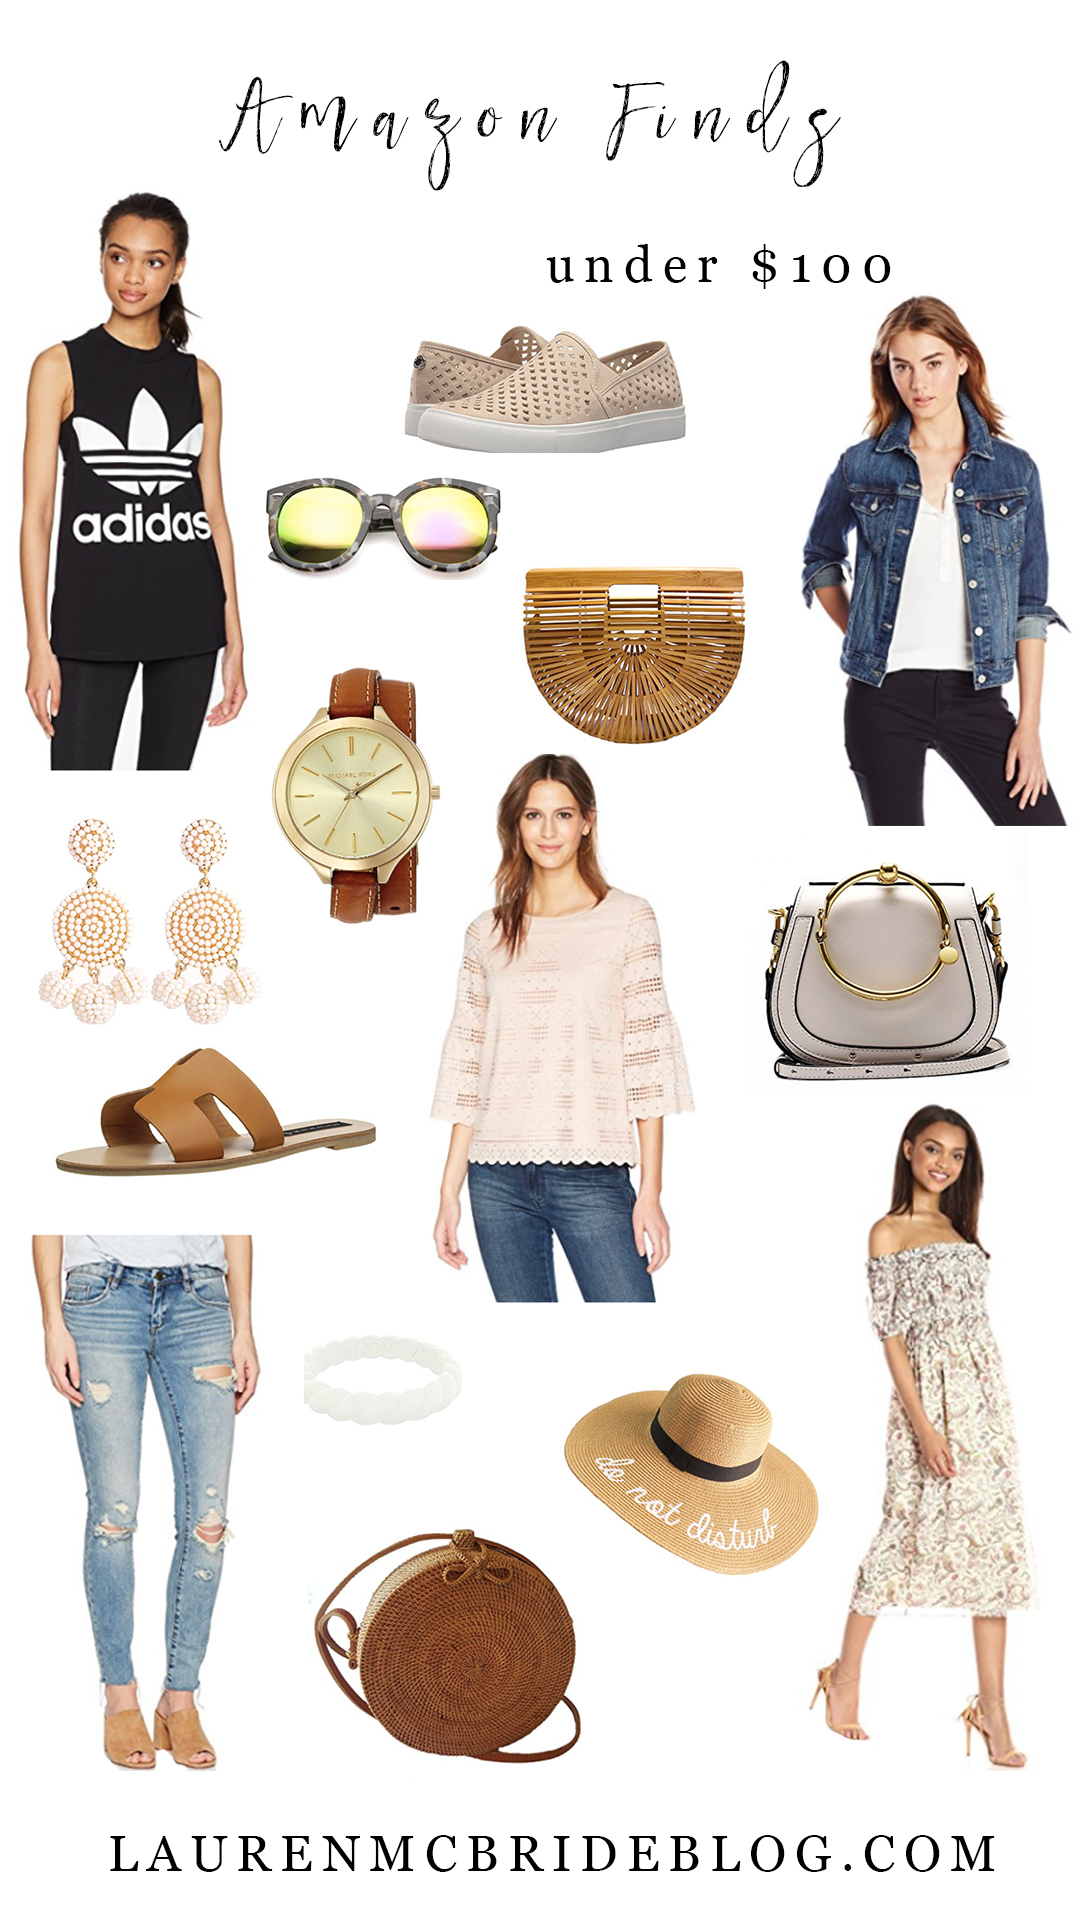 Life and style blogger Lauren McBride shares 15 great Amazon finds under $10, including workout gear, spring bags, shoes, and closet staples.